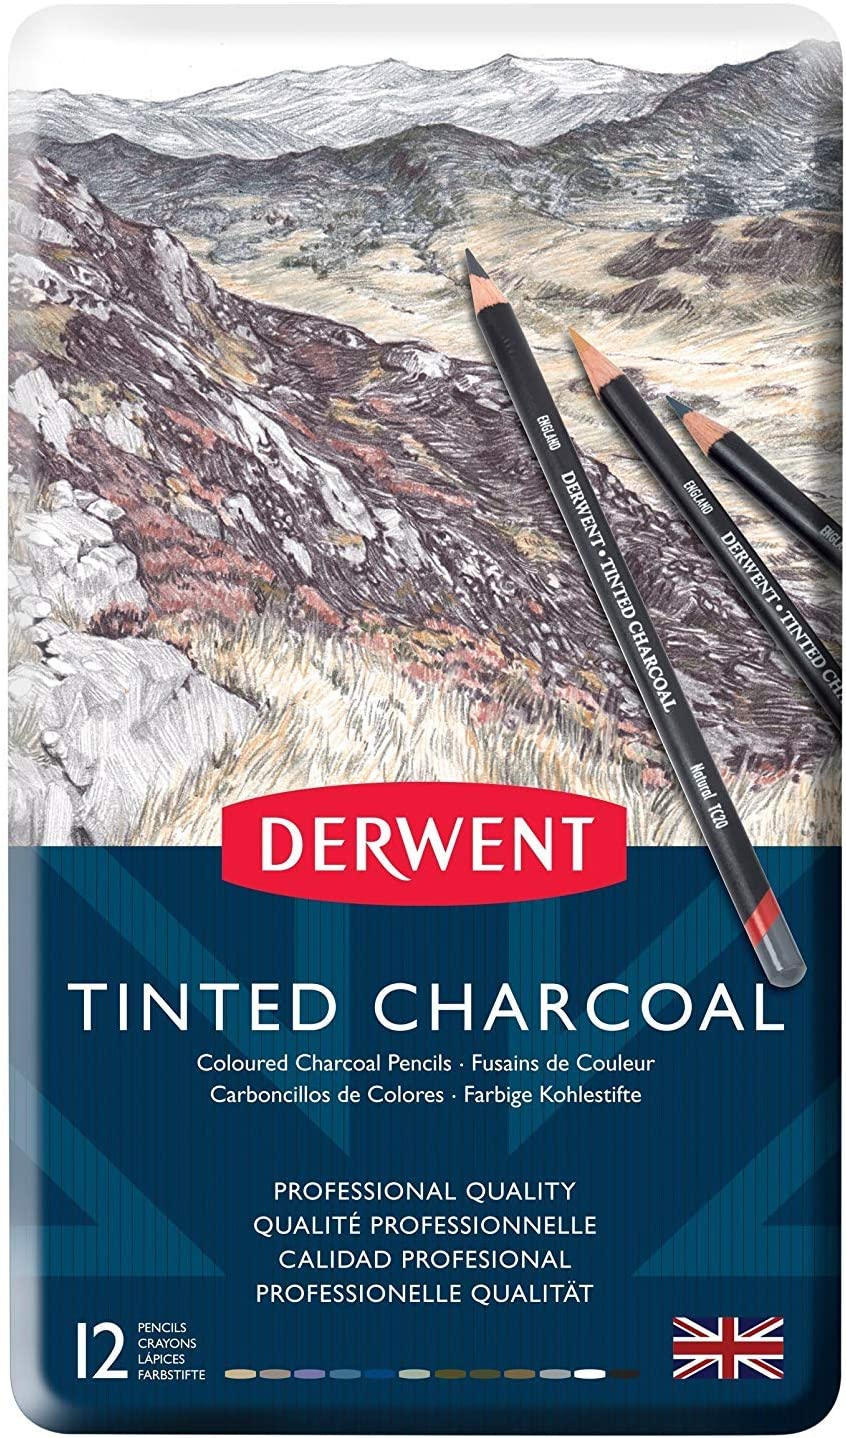 Tinted Charcoal Pencils in Metal Tin